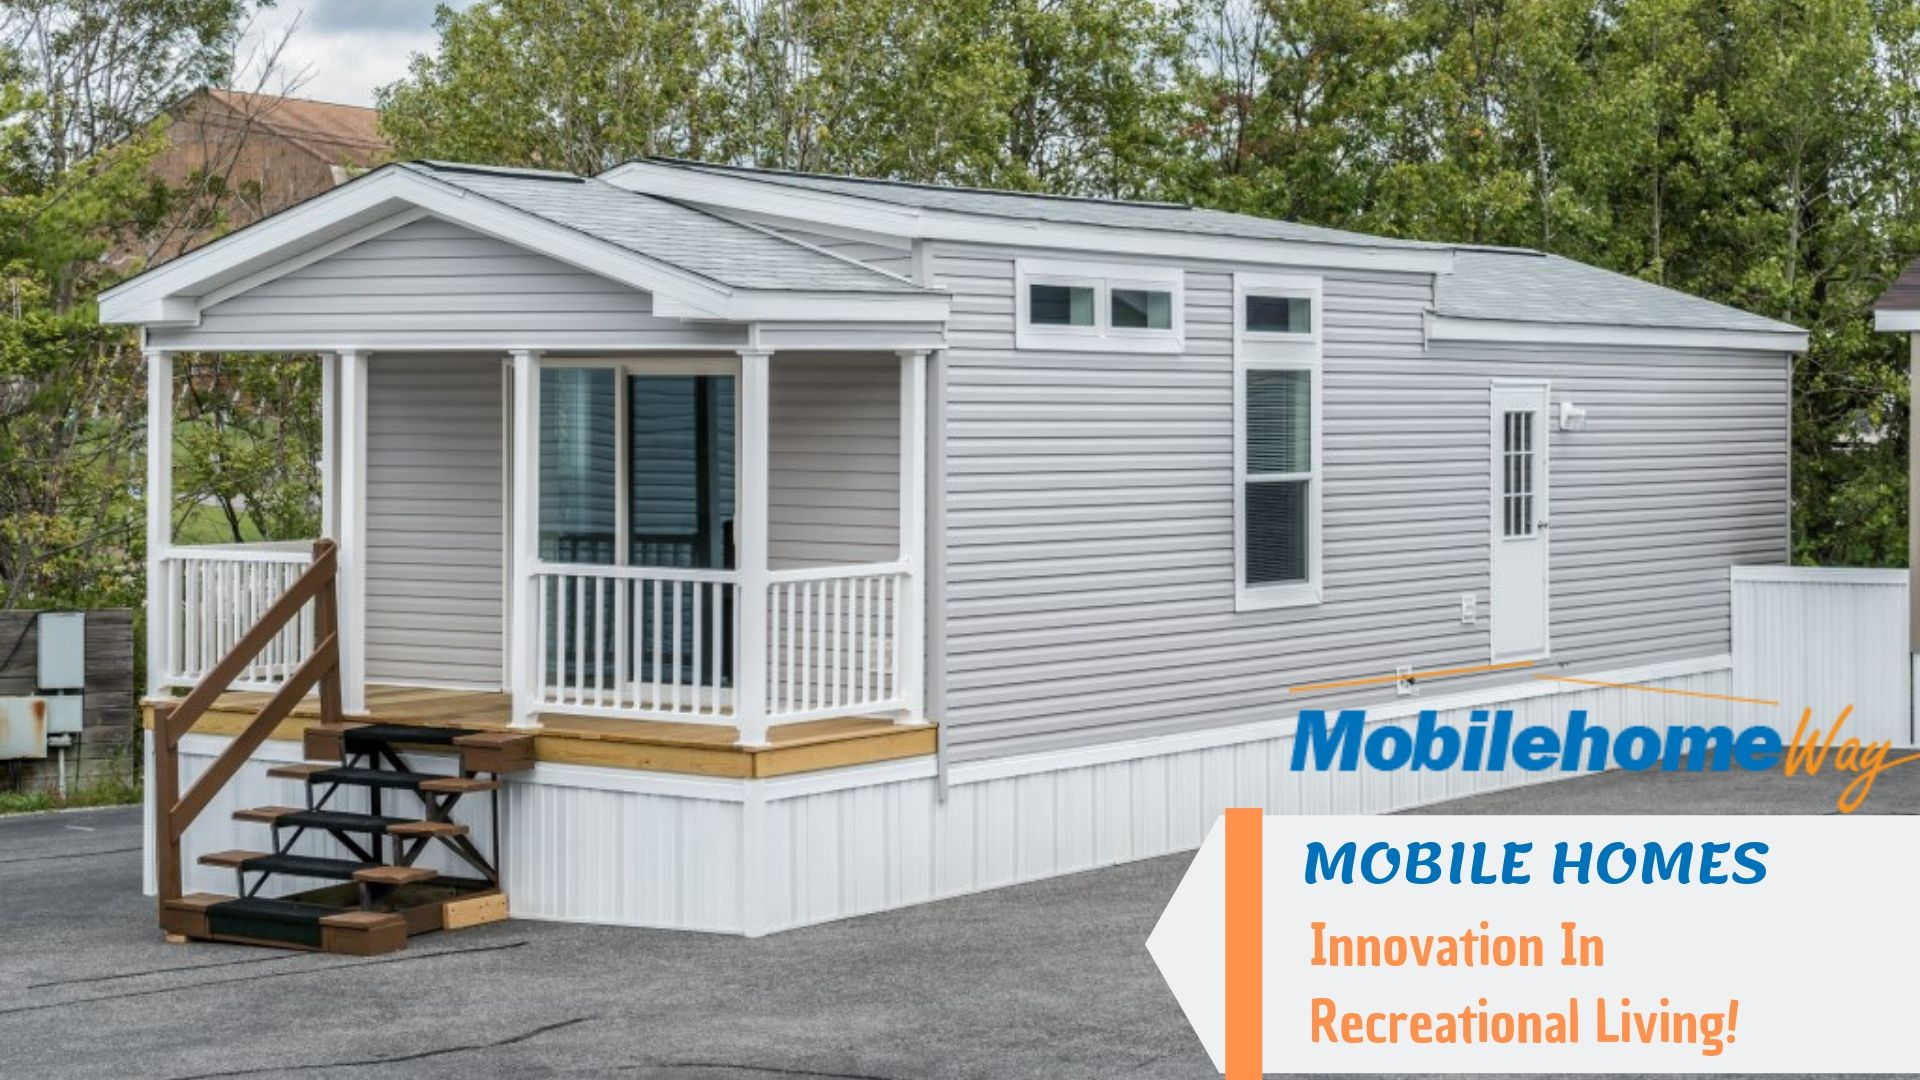 Energy Efficient Mobile Homes For Sale Mobile Home Palm Beach Gardens Mobile Homes For Sale